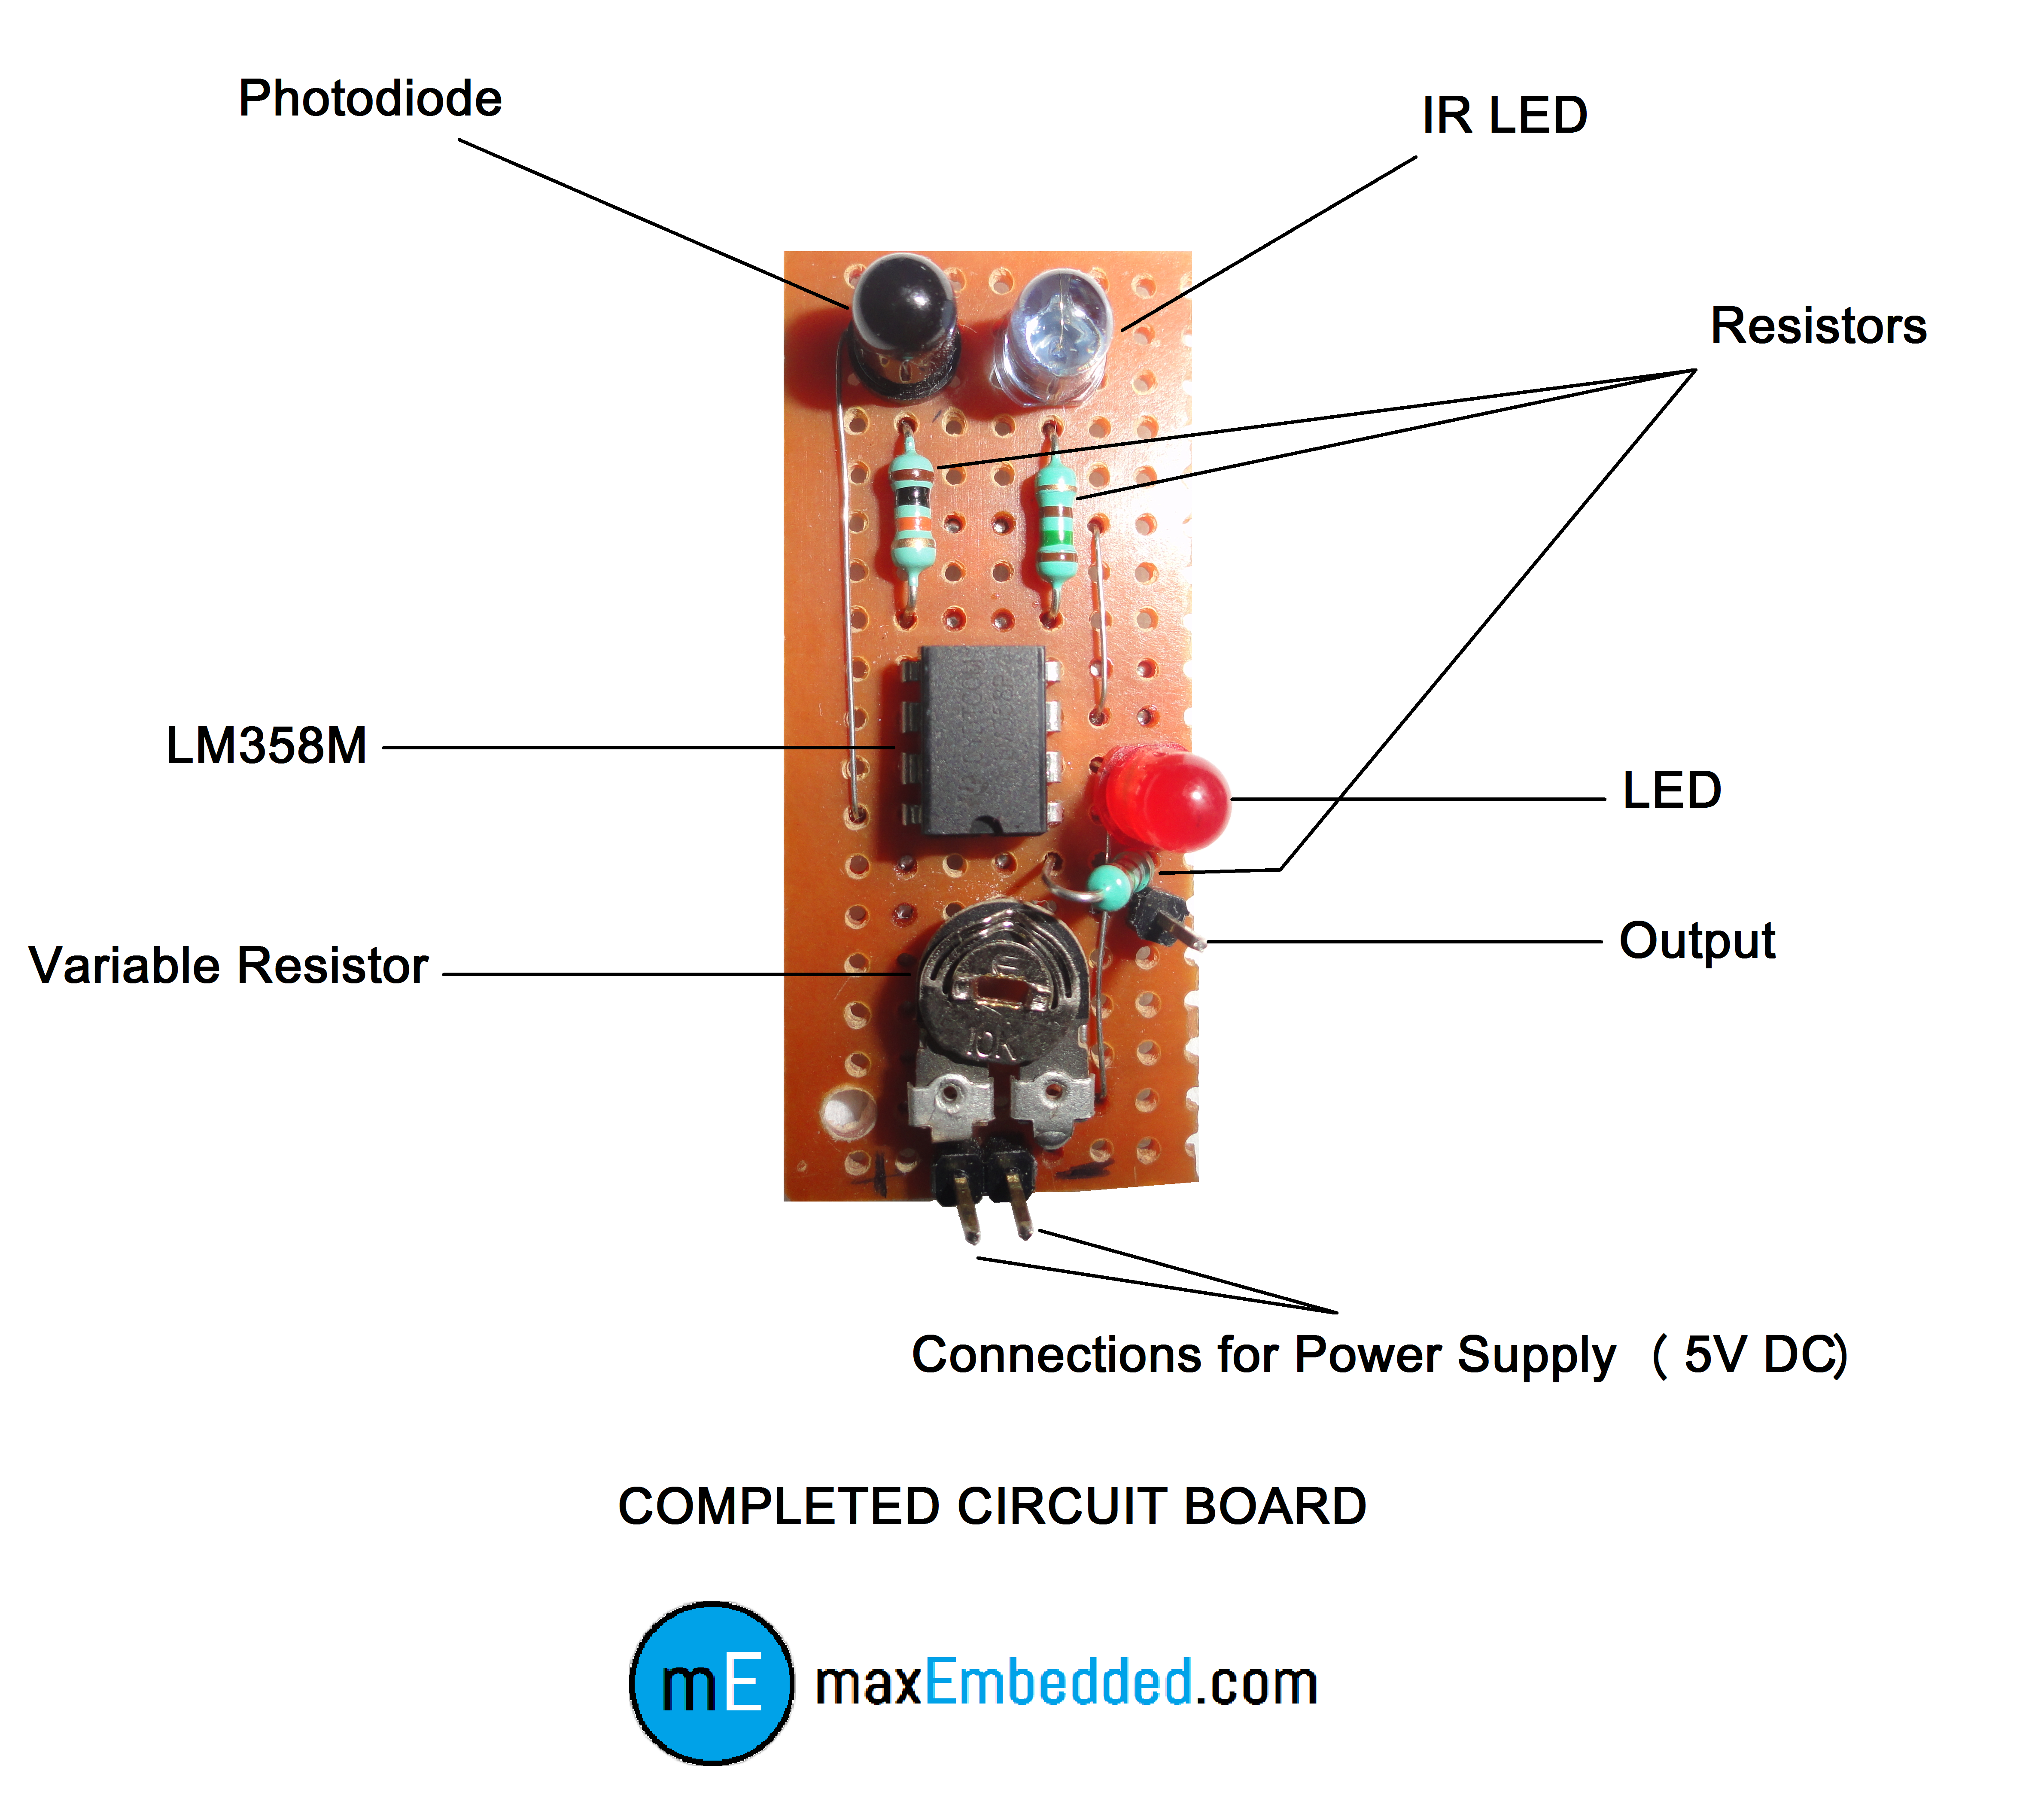 Ir Receiver Wiring Diagram 26 Images Infraredemitter38khz555timercircuitschematicgif Circuit Discription Newresize4702c415 How To Build An Sensor Maxembedded